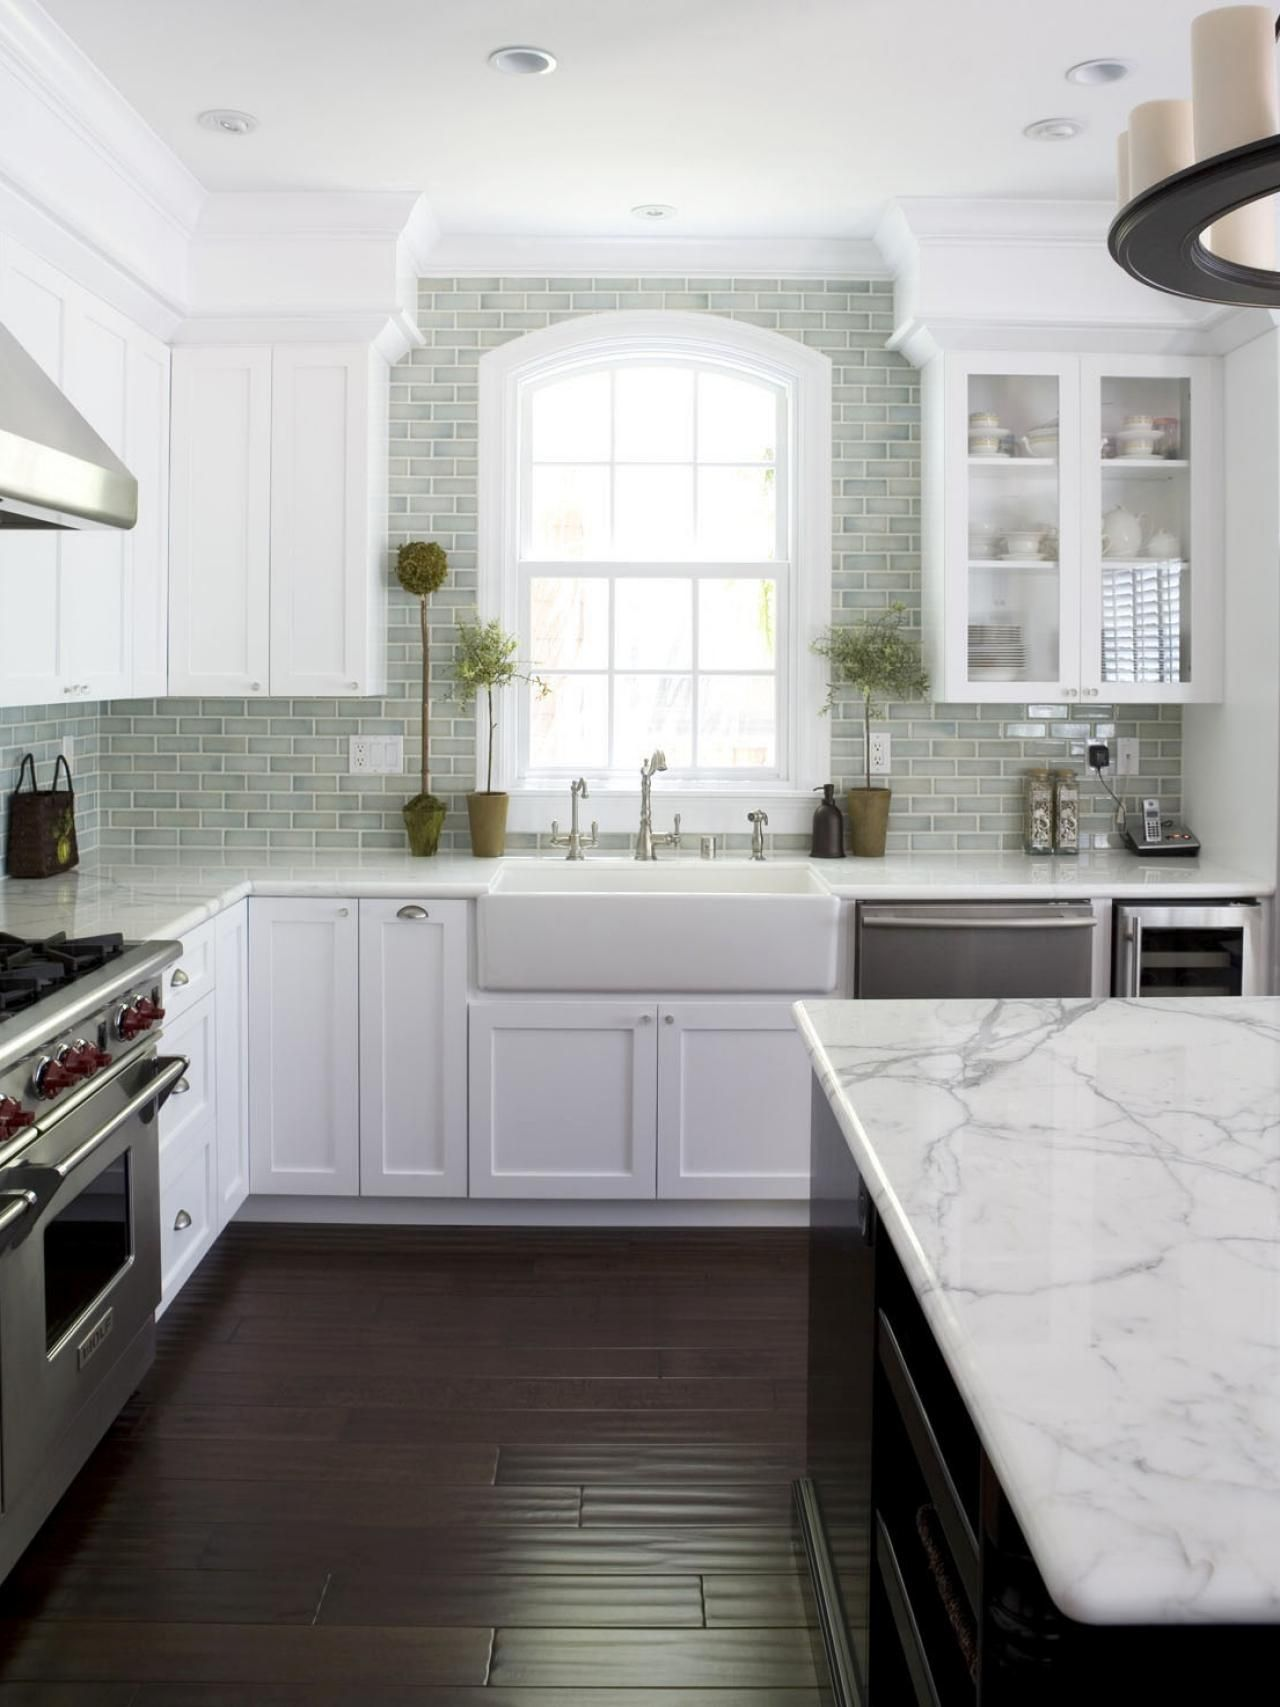 Of White Kitchens With Dark Floors Our 55 Favorite White Kitchens Islands Cabinets And Countertops